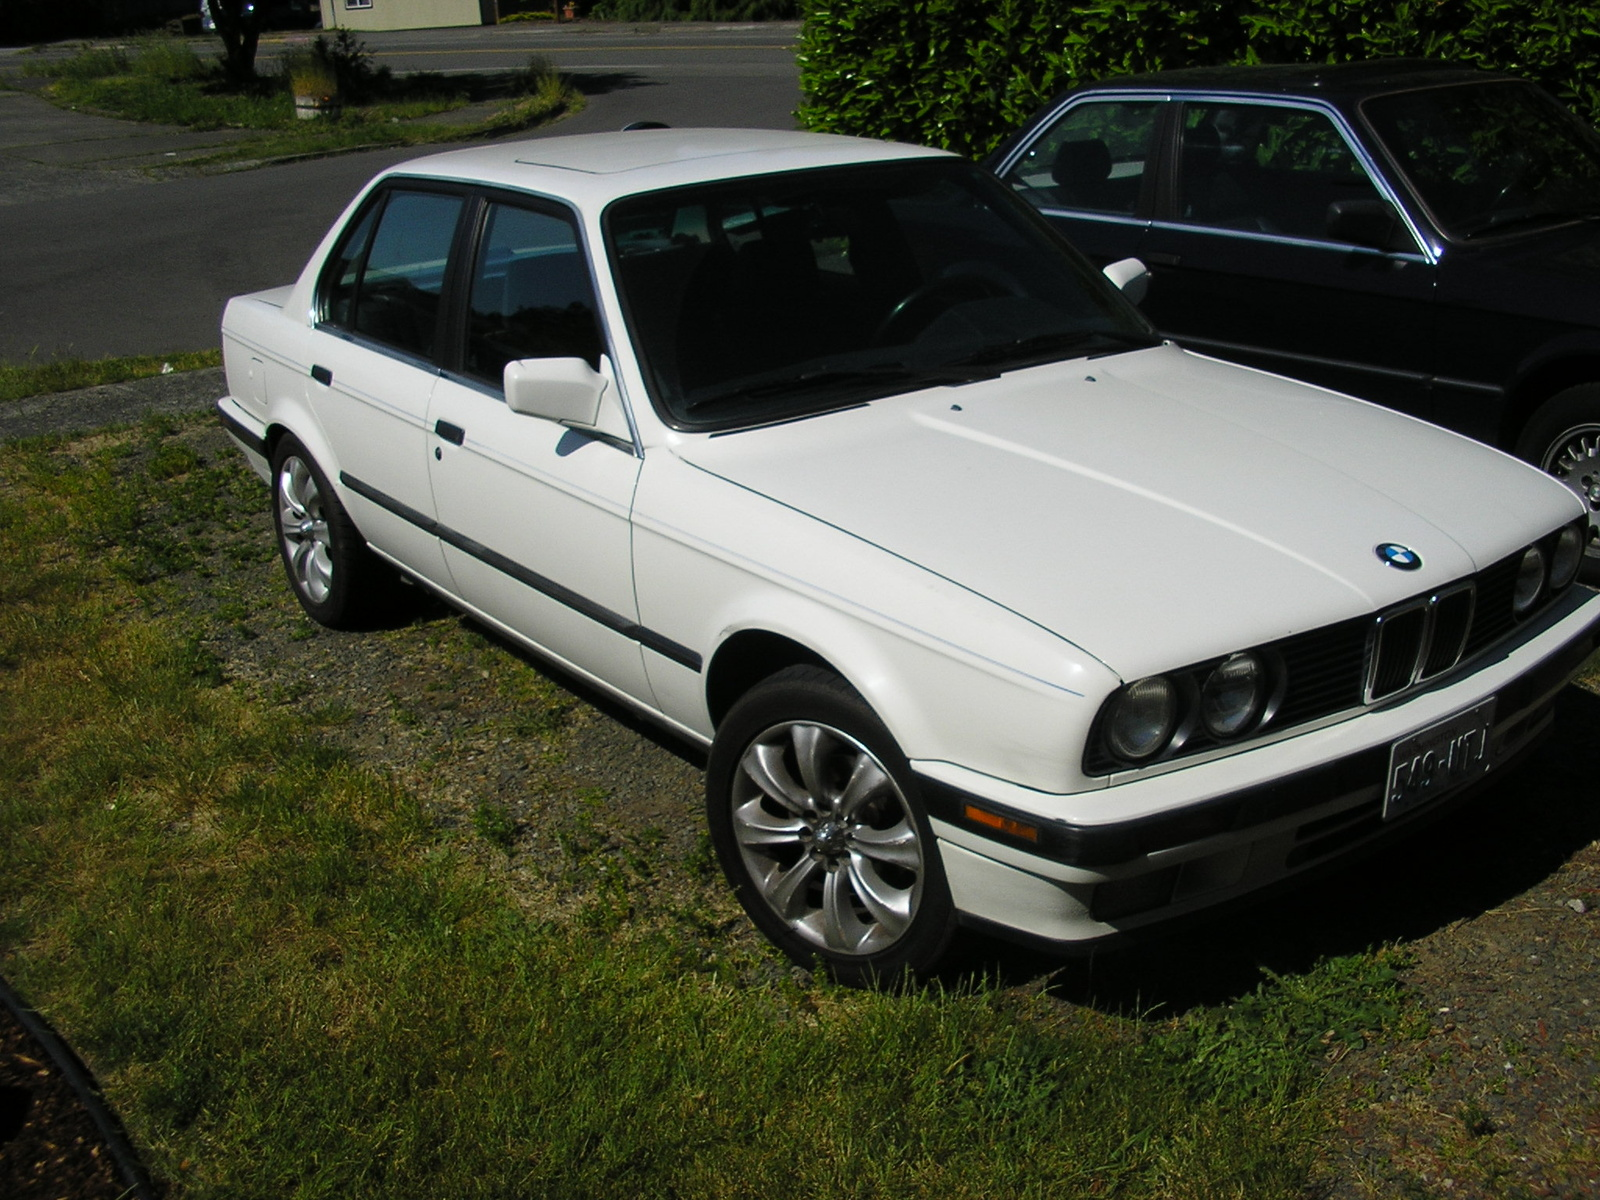 BMW 3 series 325e 1990 photo - 6